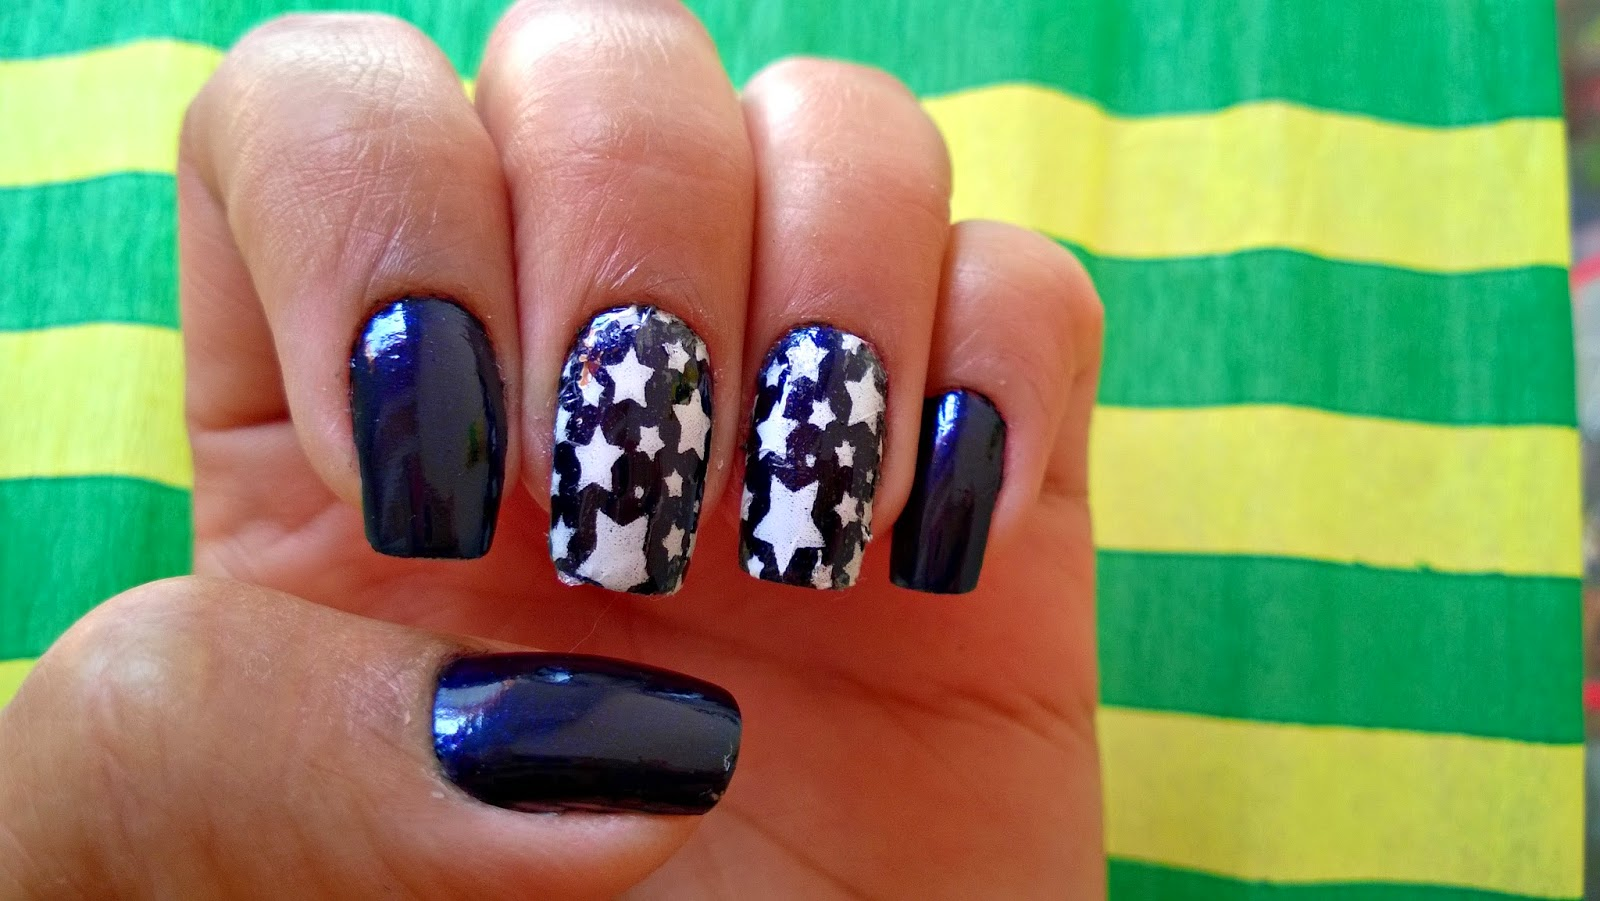 Nail Art da Vez: Mistérios do Destino + Renda Bruna Moraes